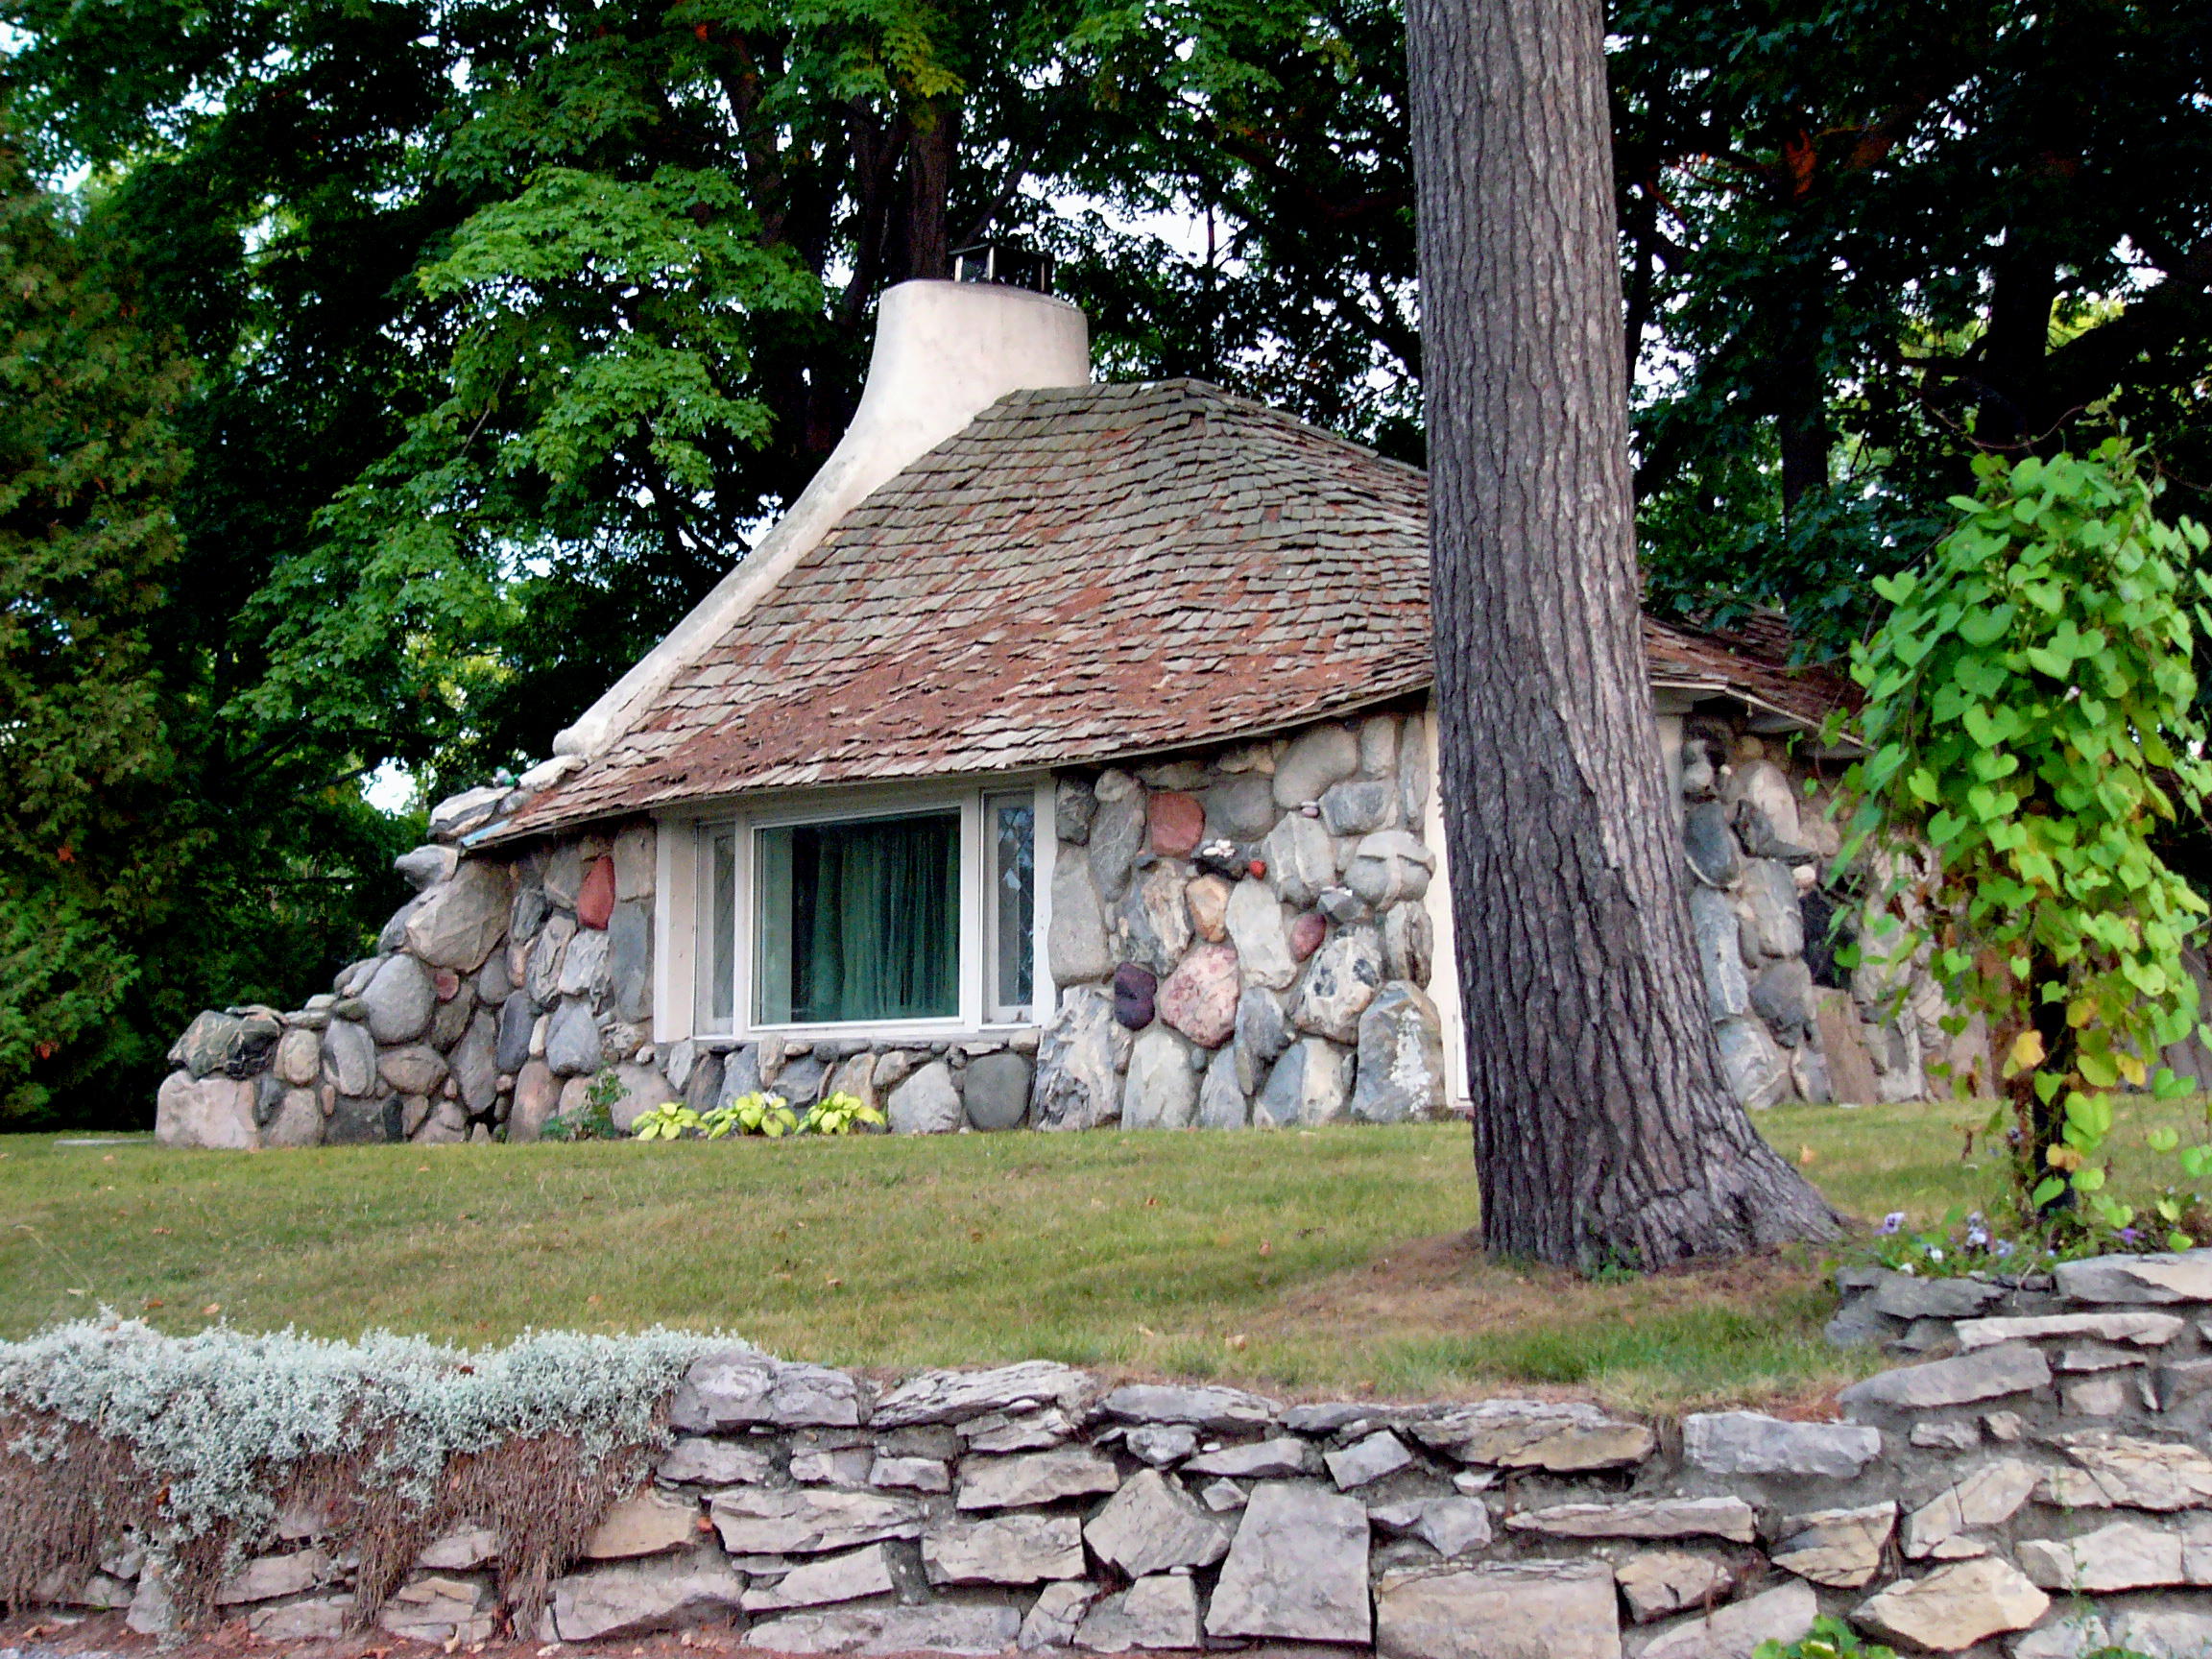 Have you taken the   Earl Young Mushroom House Tour   yet? If not take some time to learn about these amazing world famous homes this summer.